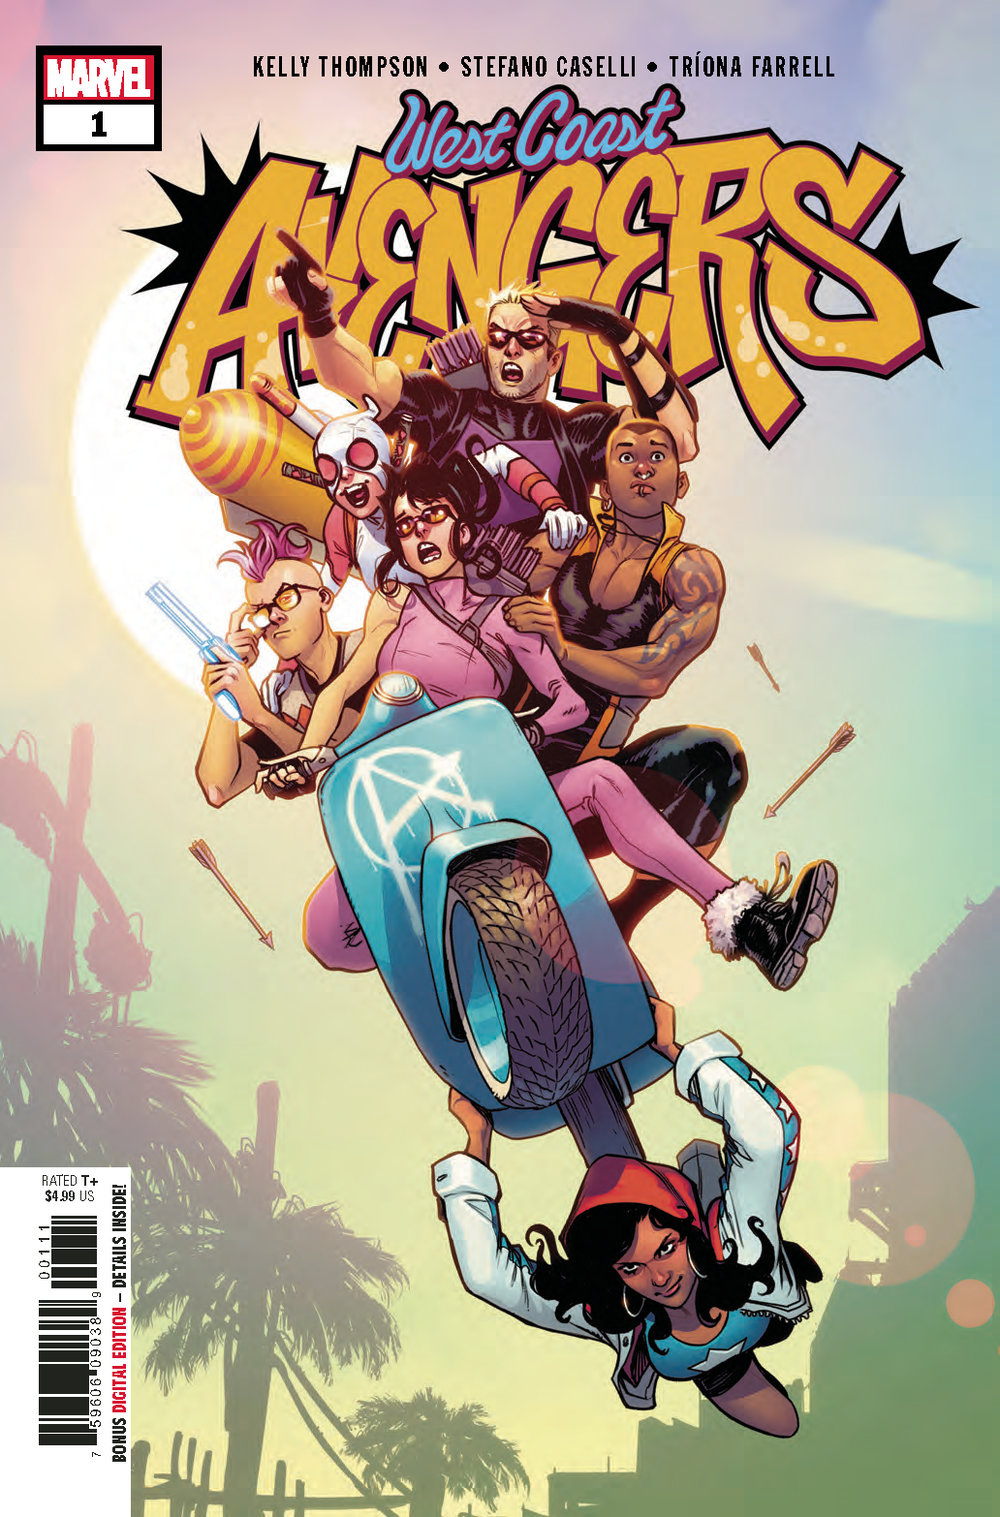 West Coast Avengers #1  is out Aug. 22.